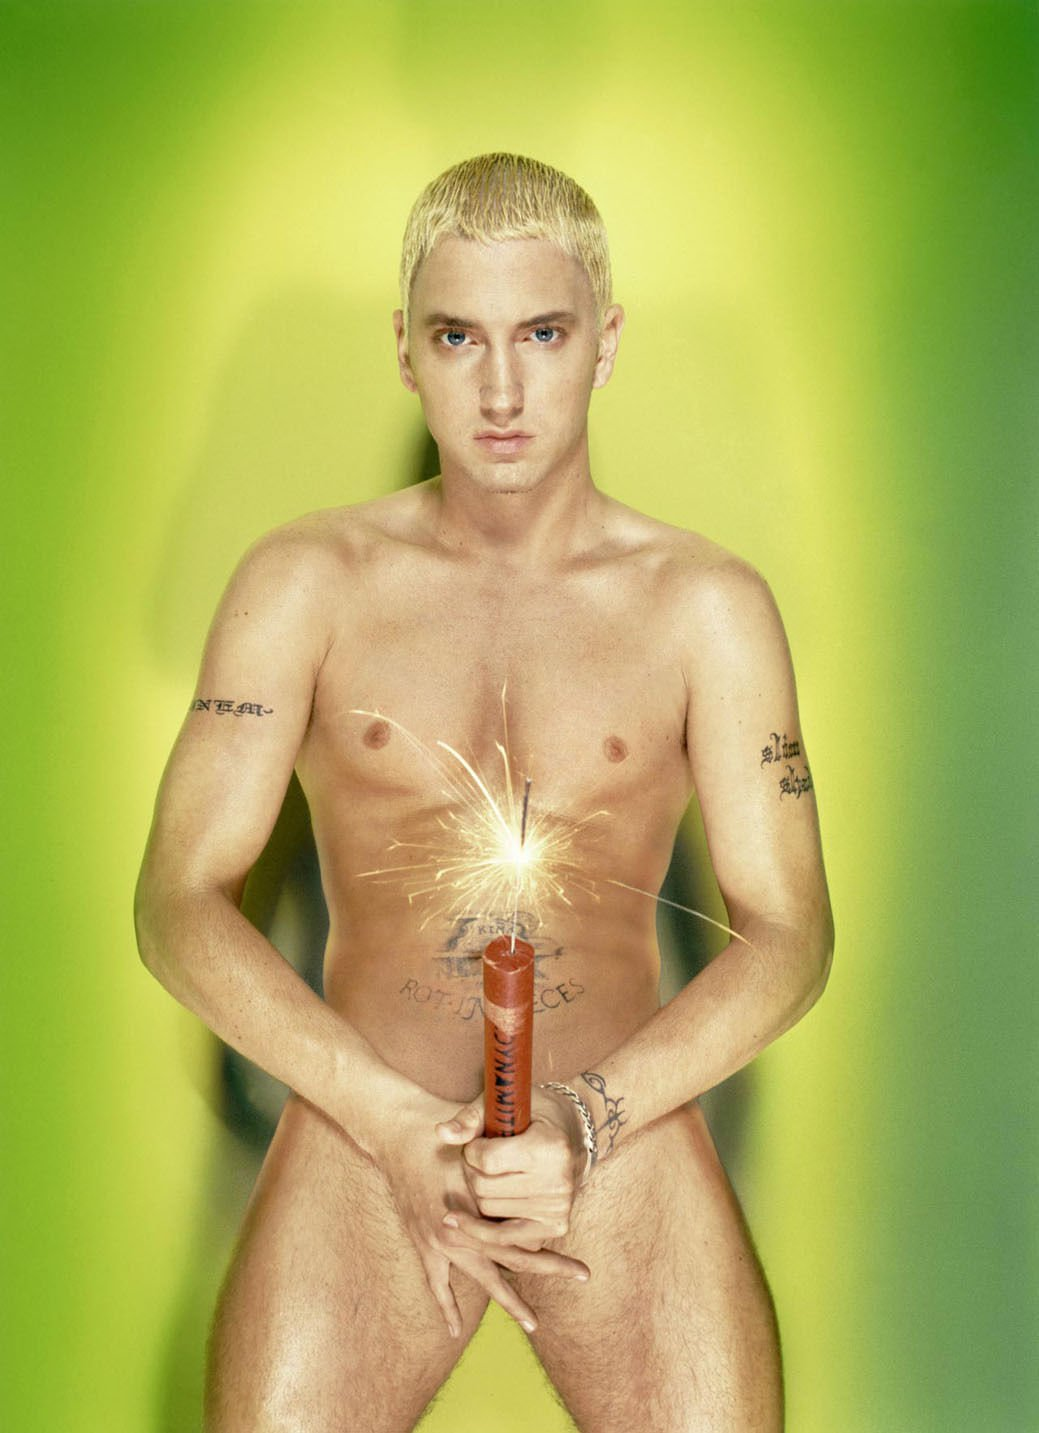 eminem-fire-piss-out-lyrictures-curvy-naked-nude-babes